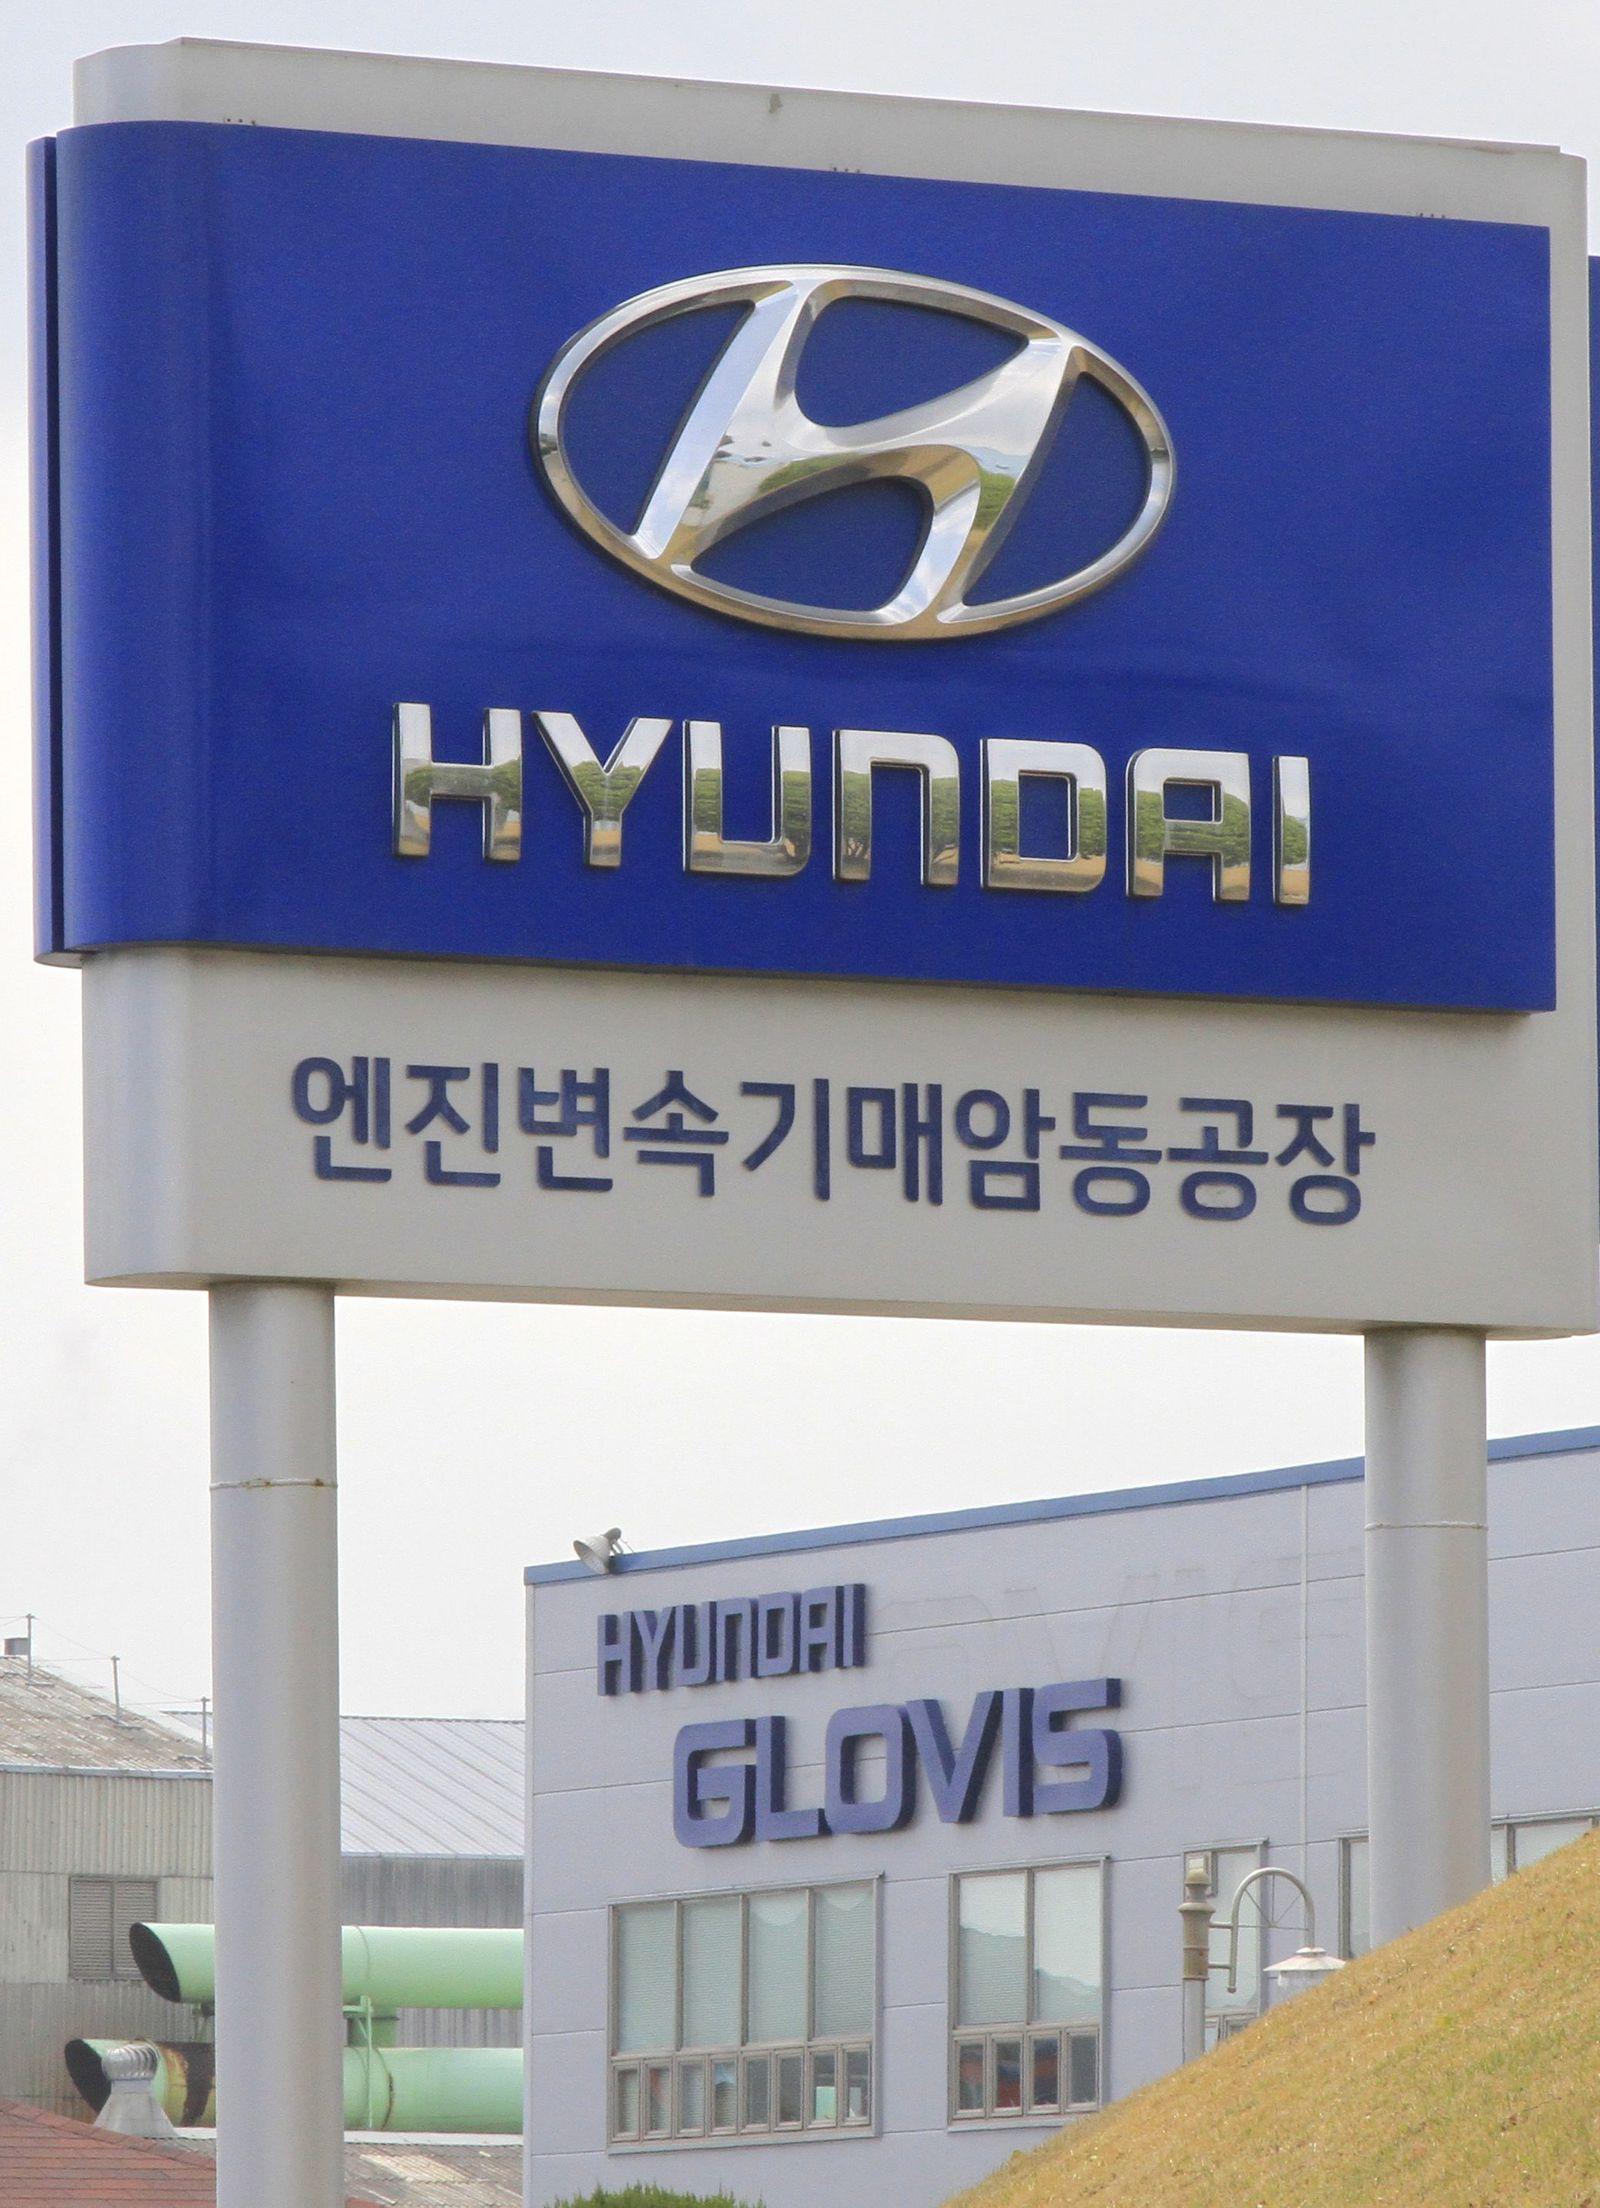 Hyundai South Korea